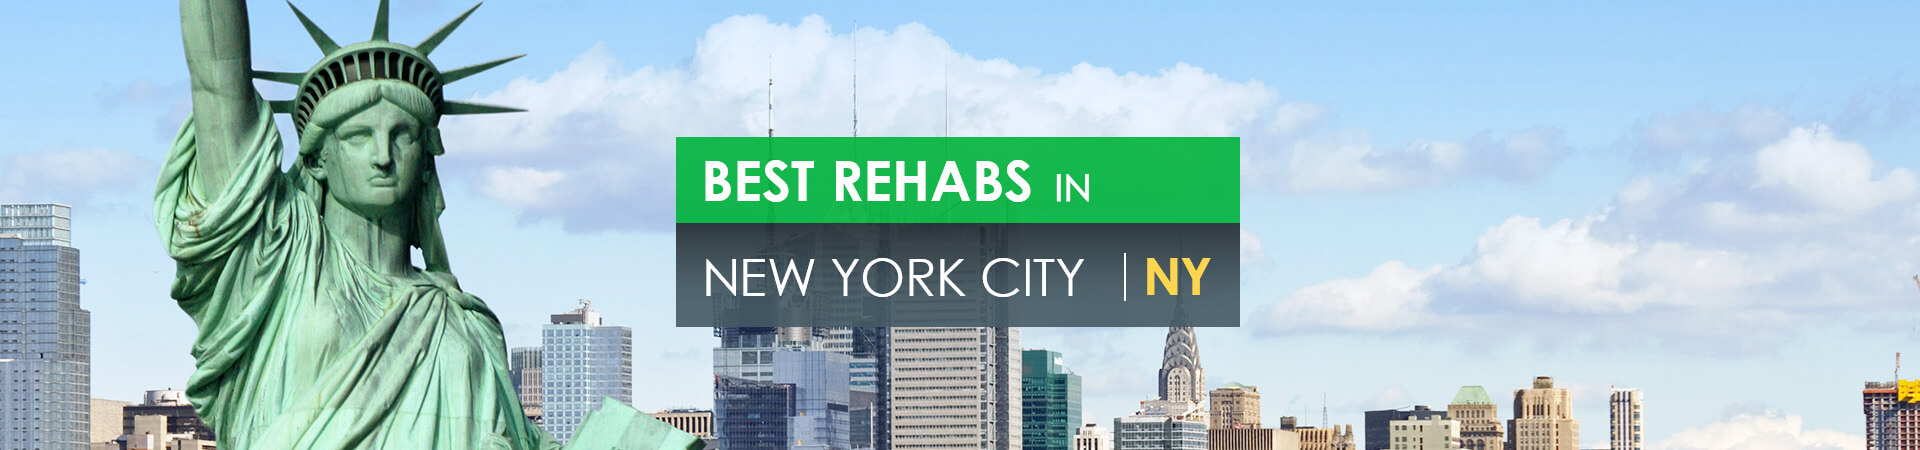 Best rehabs in New York City, NY